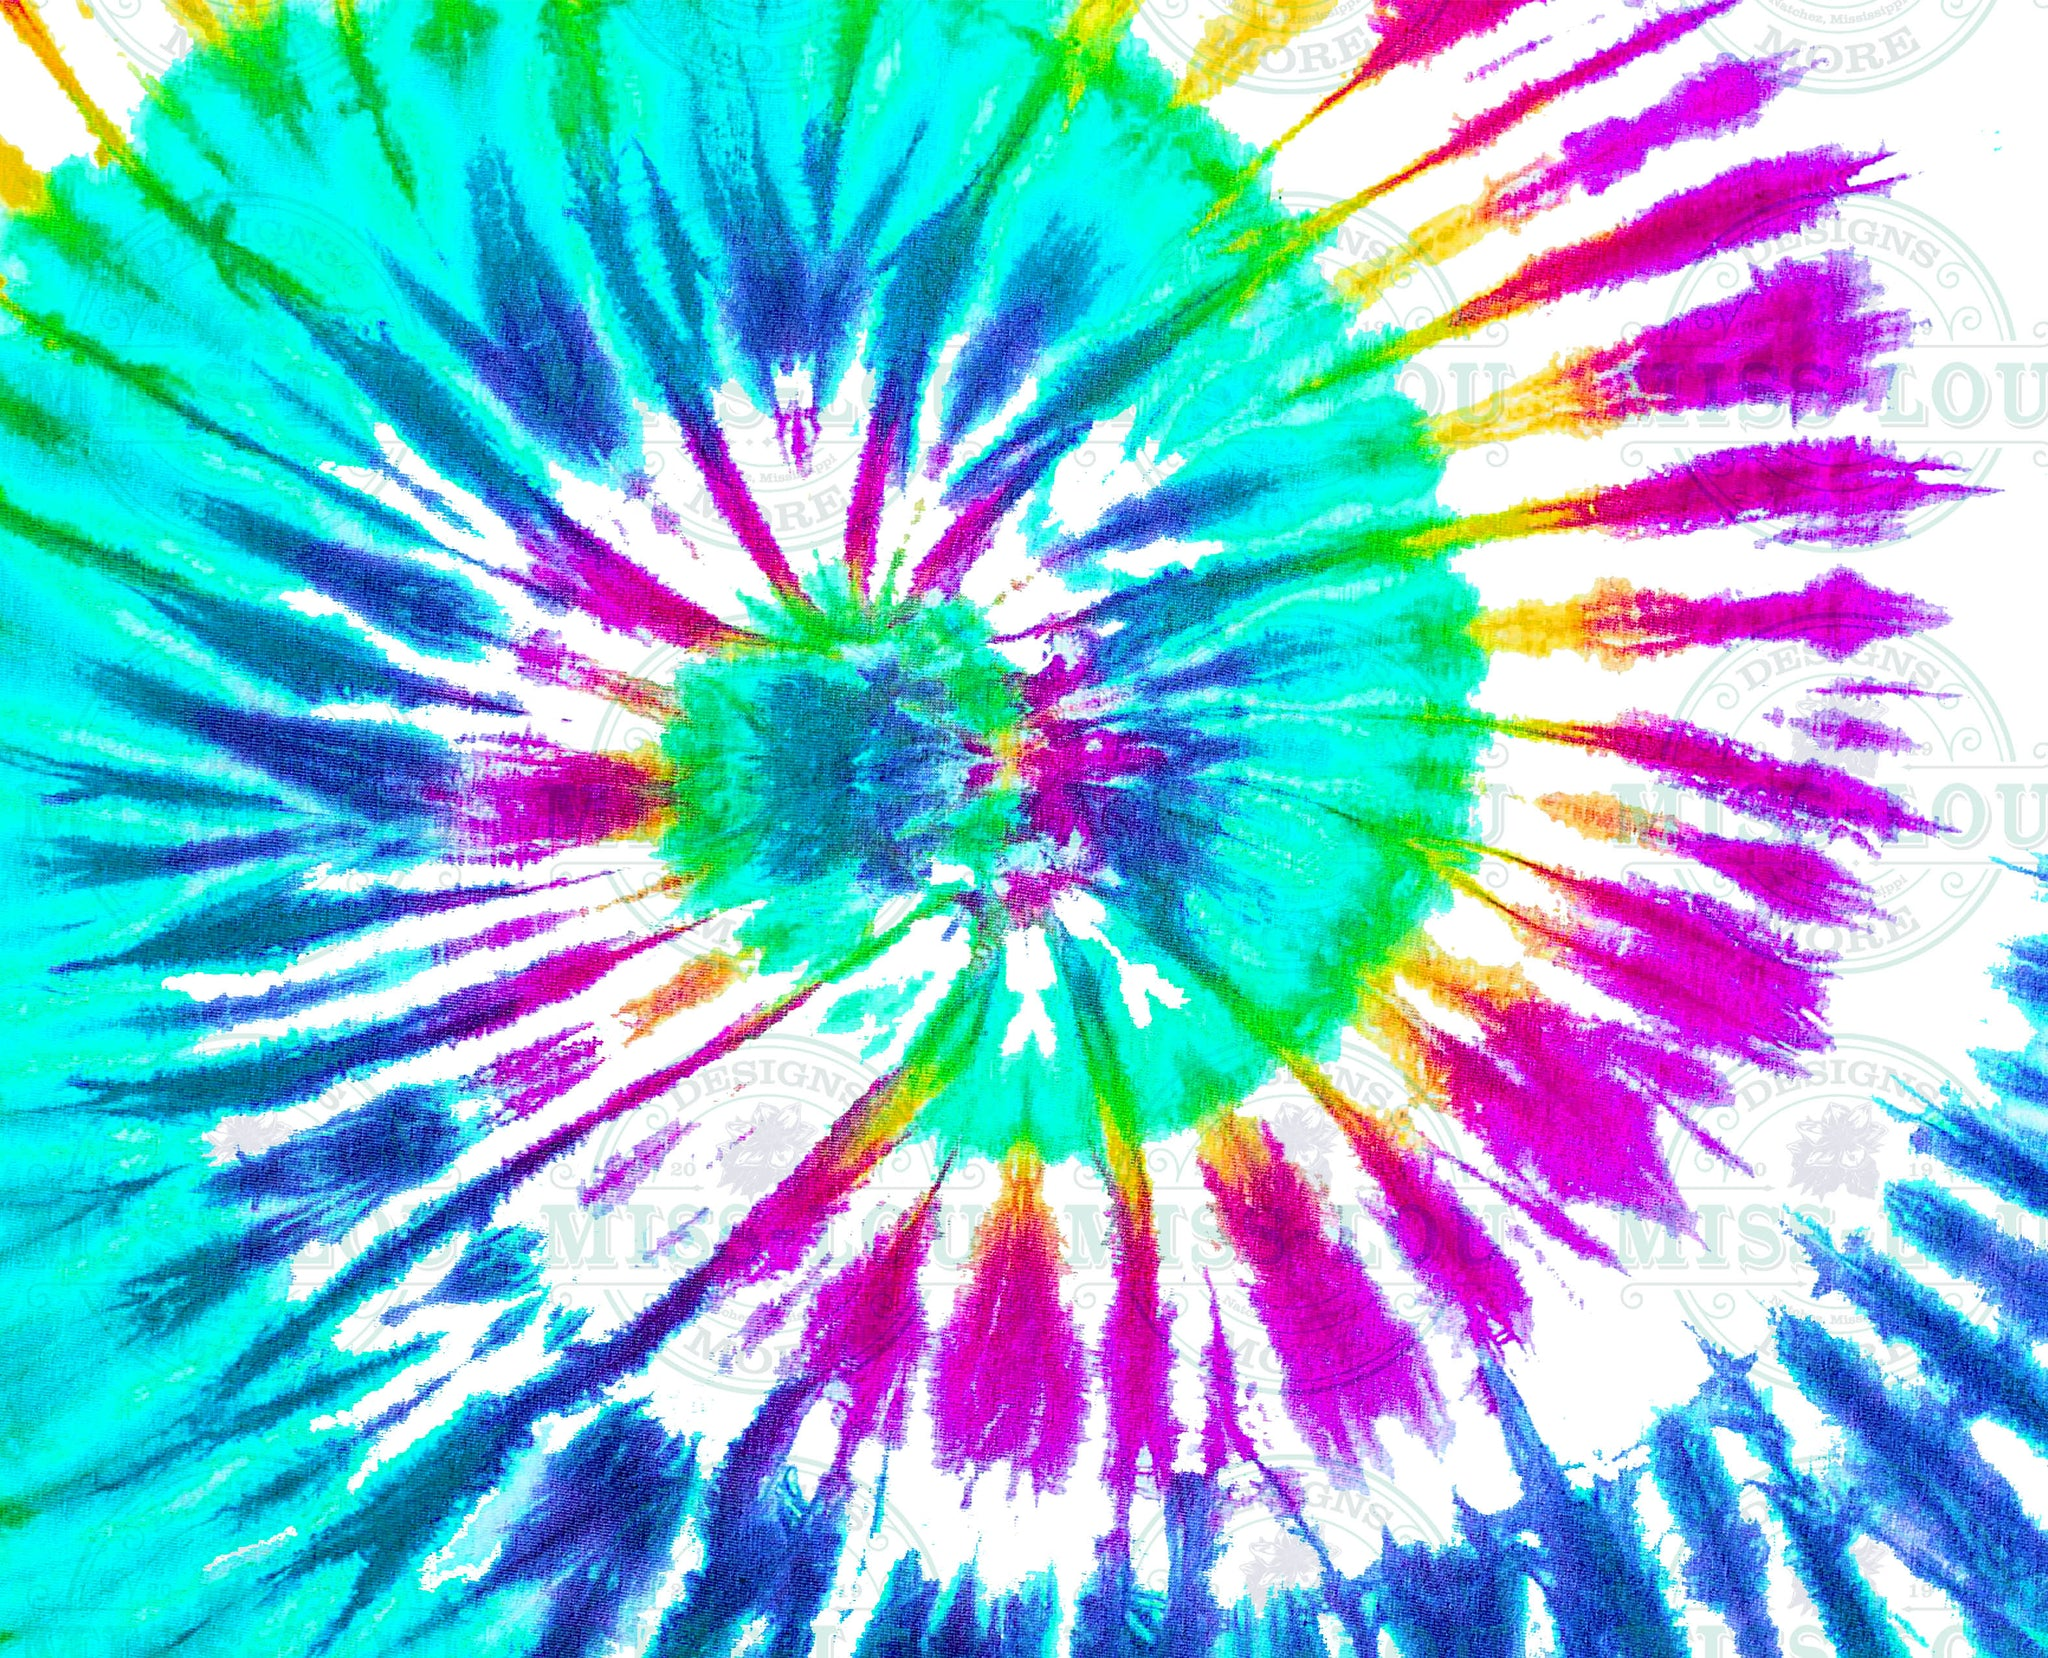 Tie Dye Wrap v.2 Digital Download